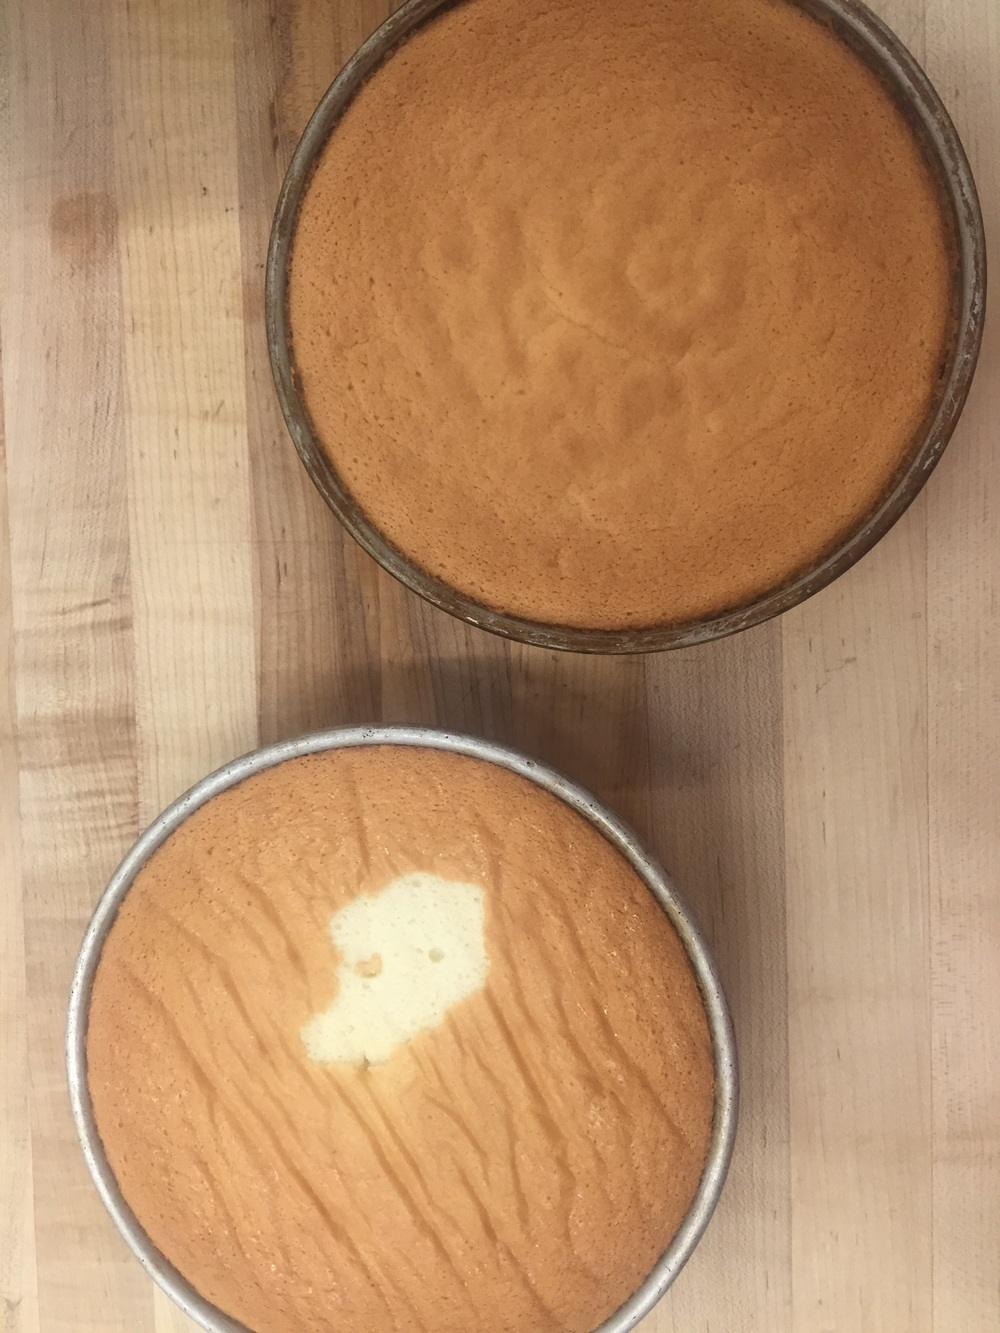 Two chiffon cakes, ready for duty!